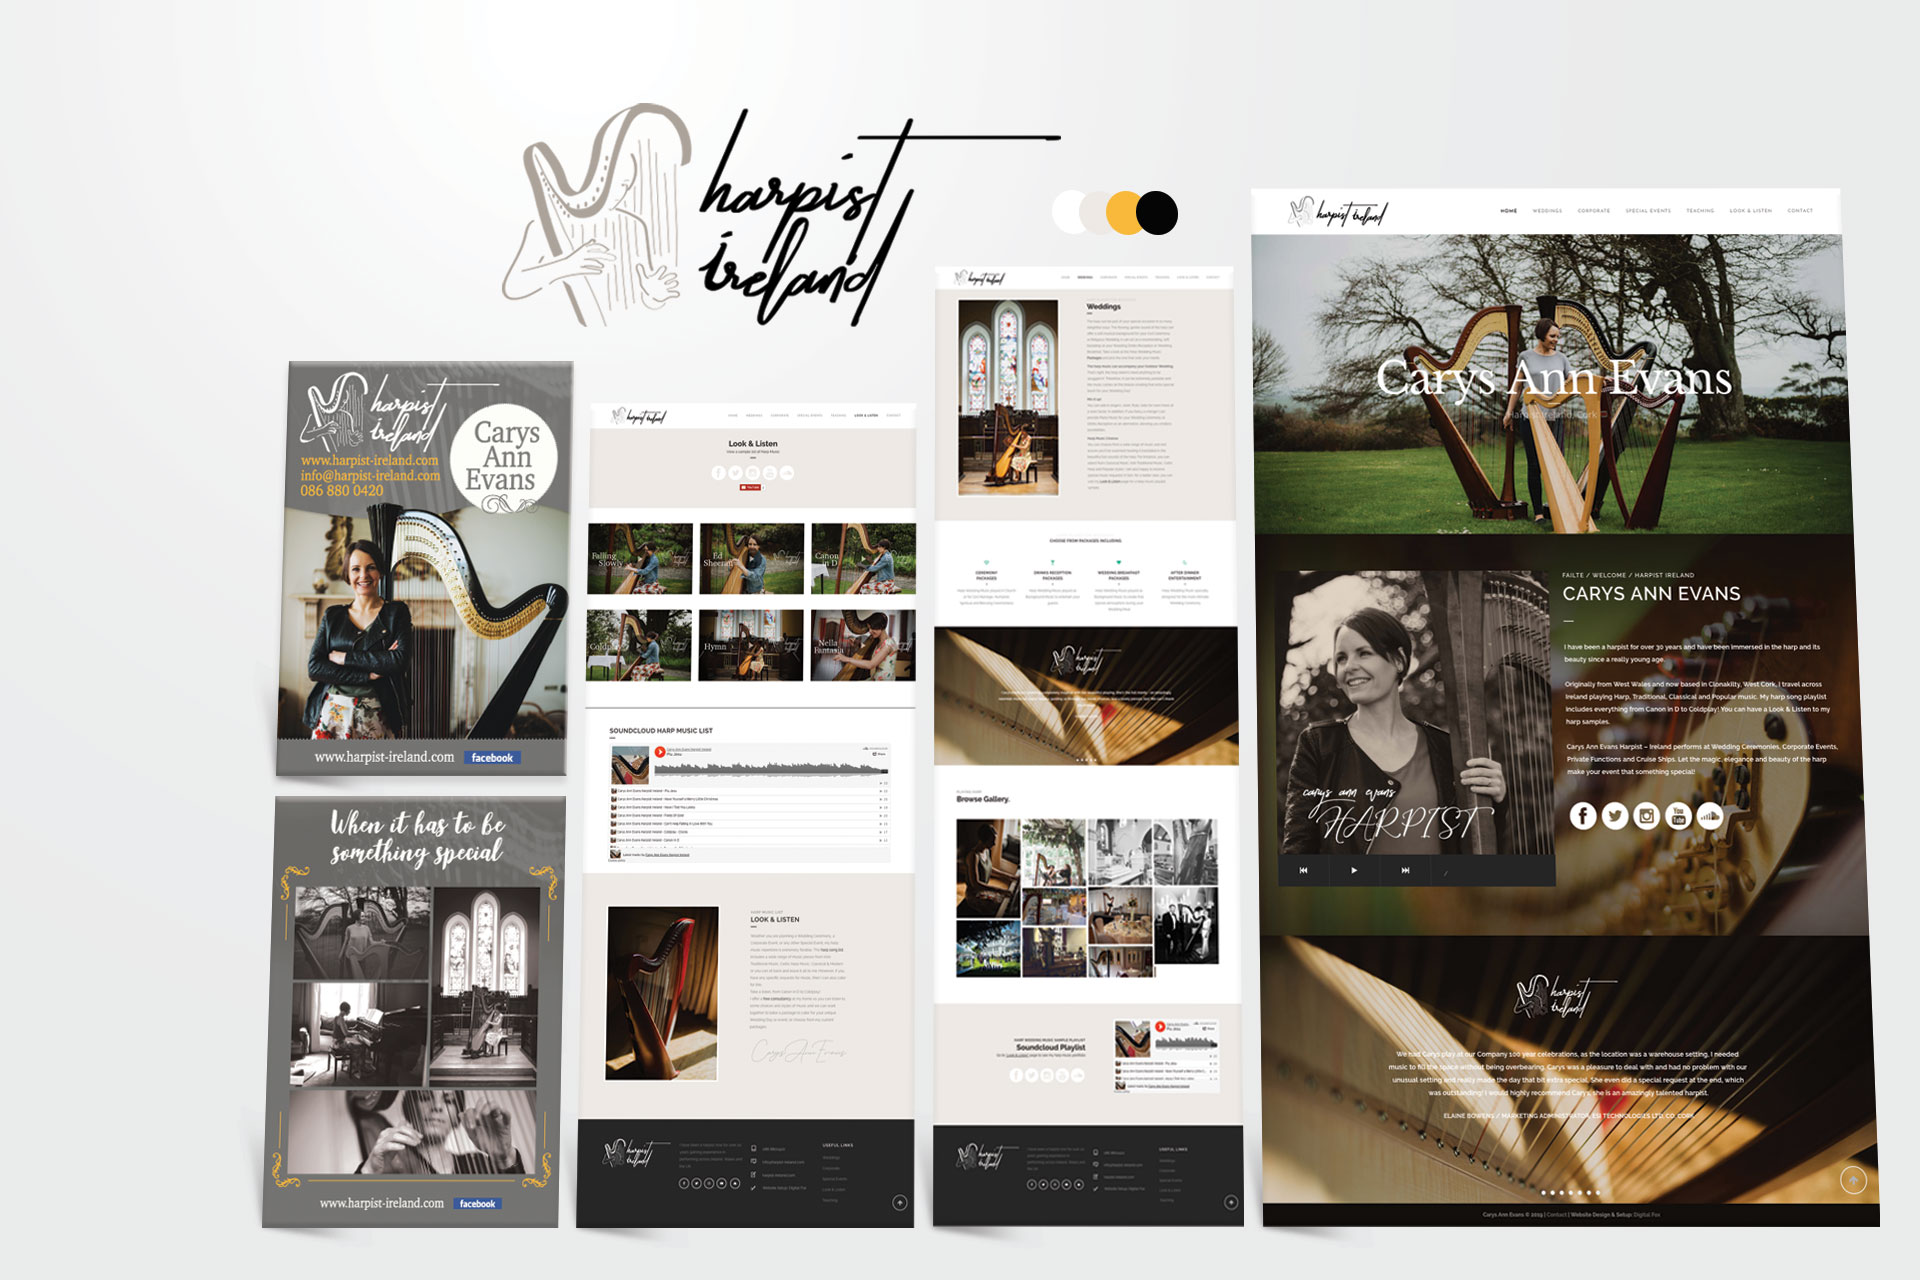 harpist ireland website design for artists Clonakilty, West Cork